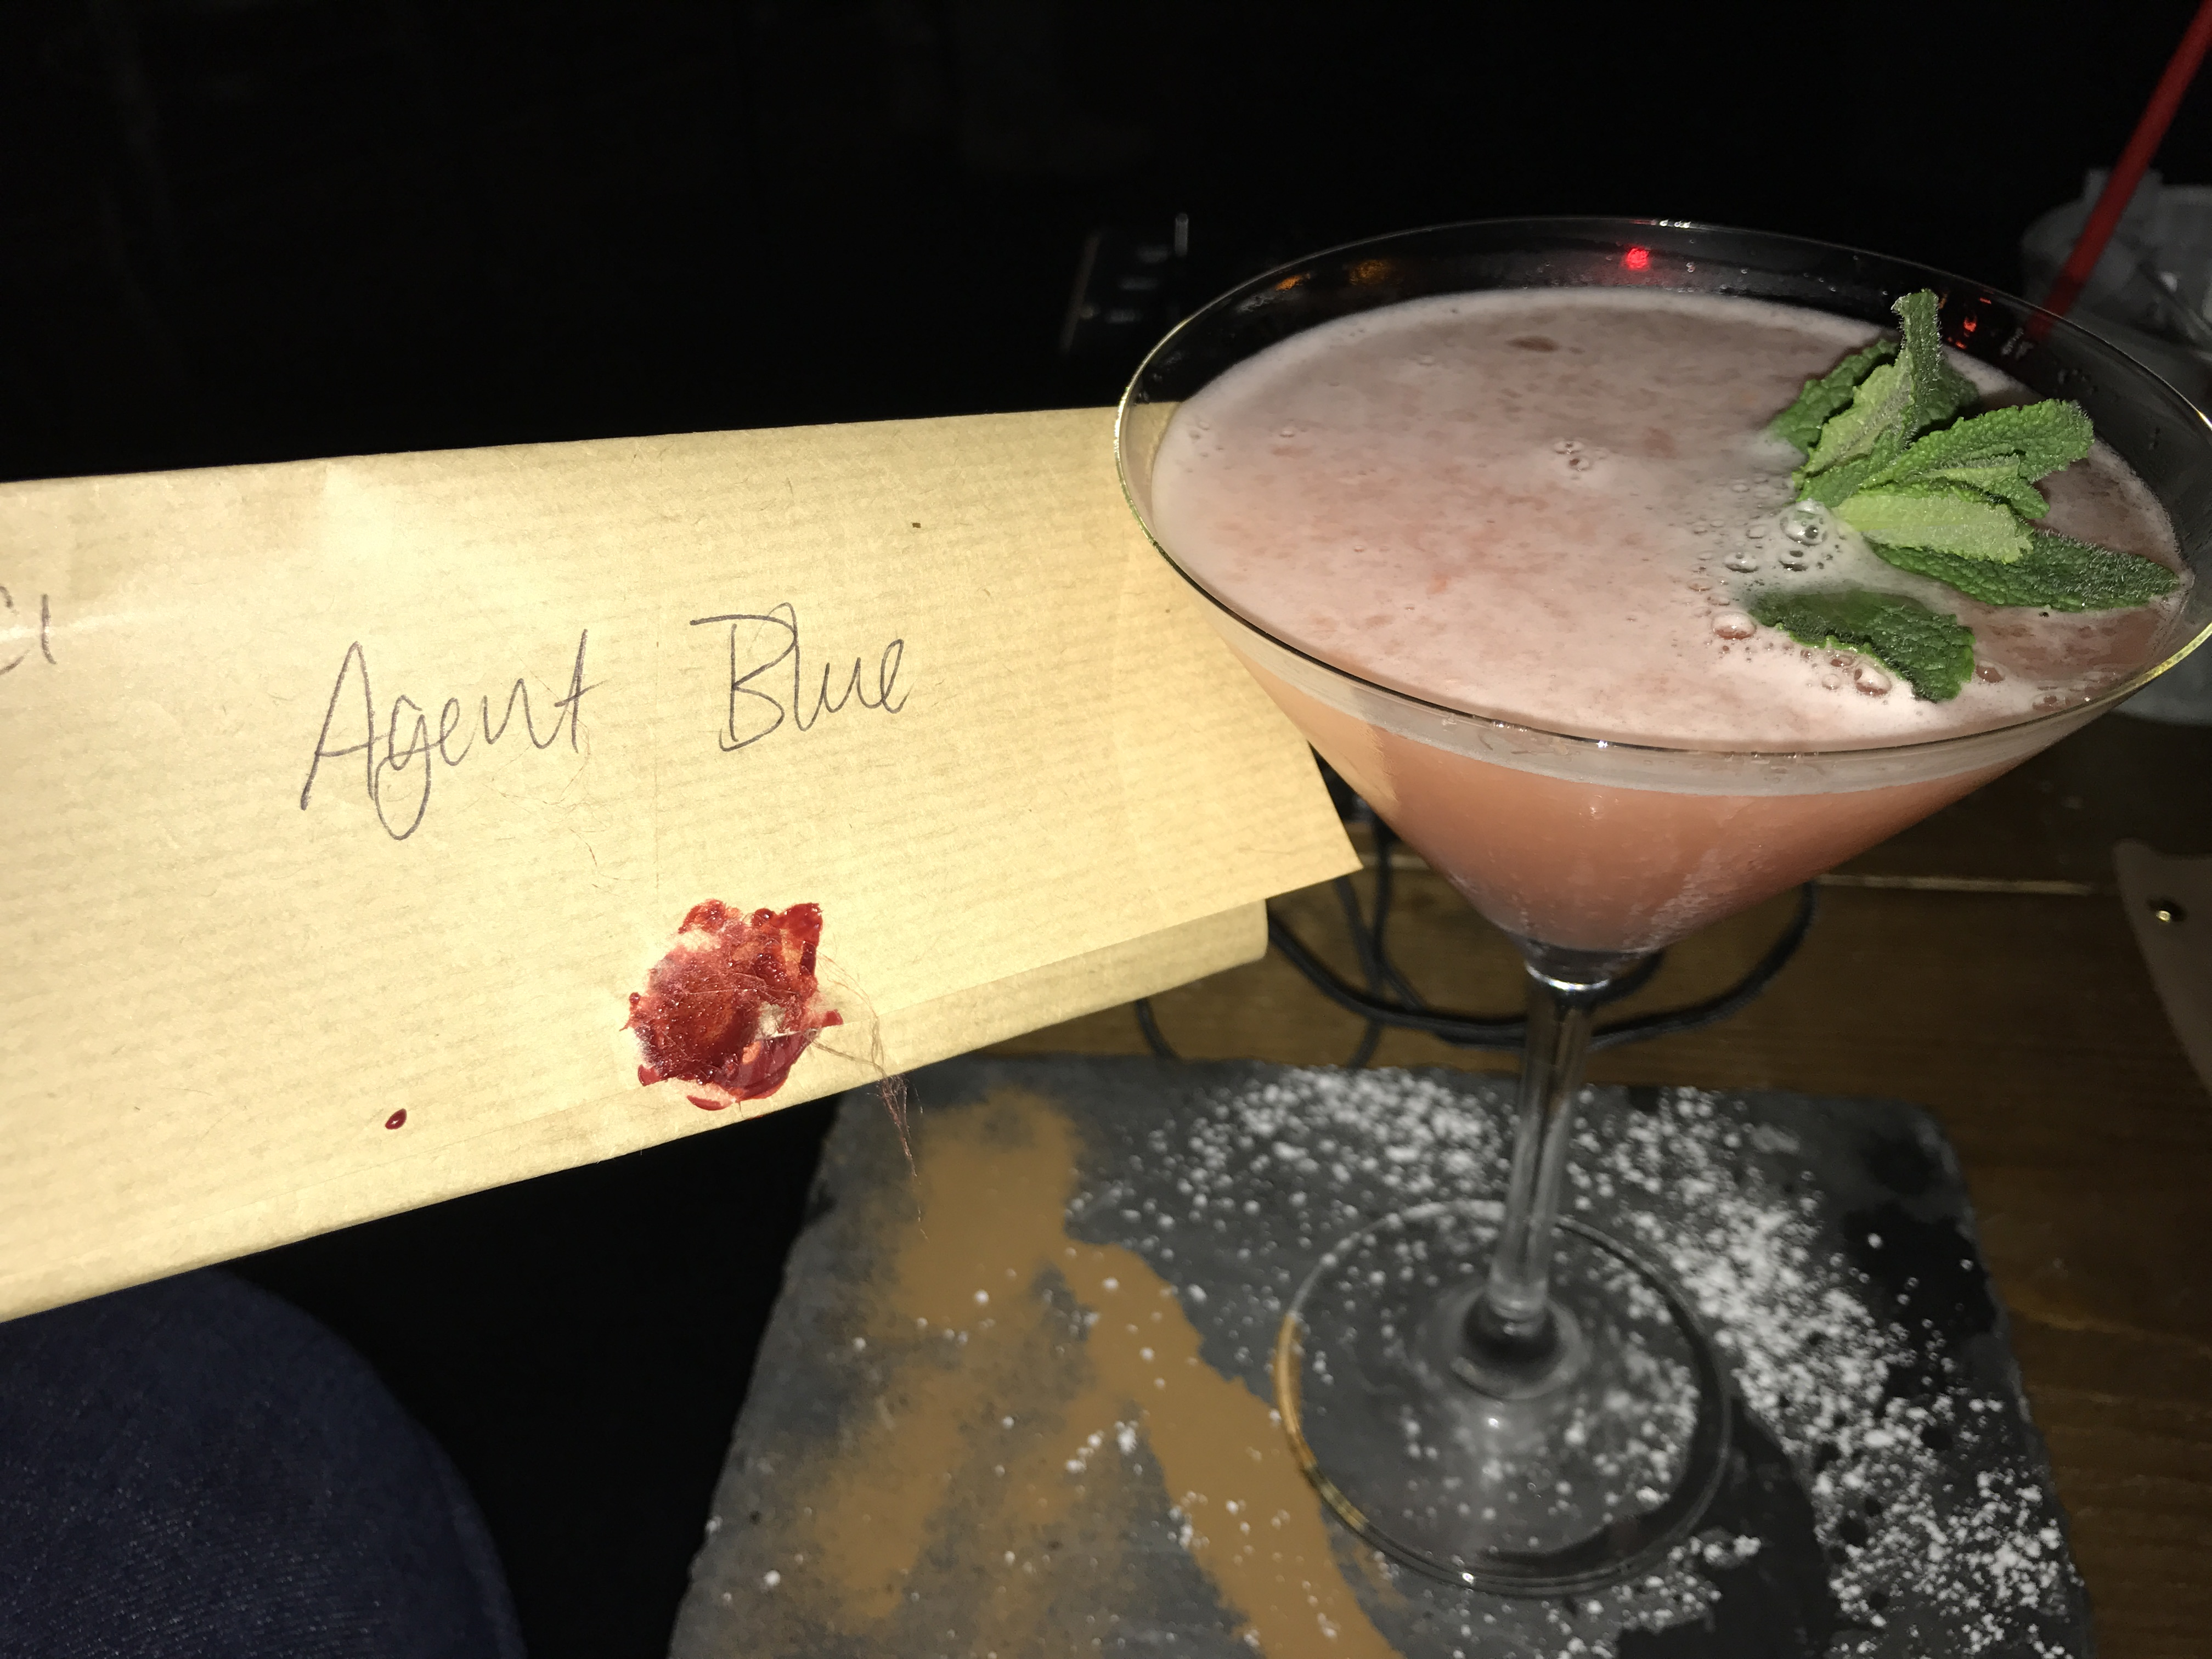 Bletchley Agent Blue cocktail